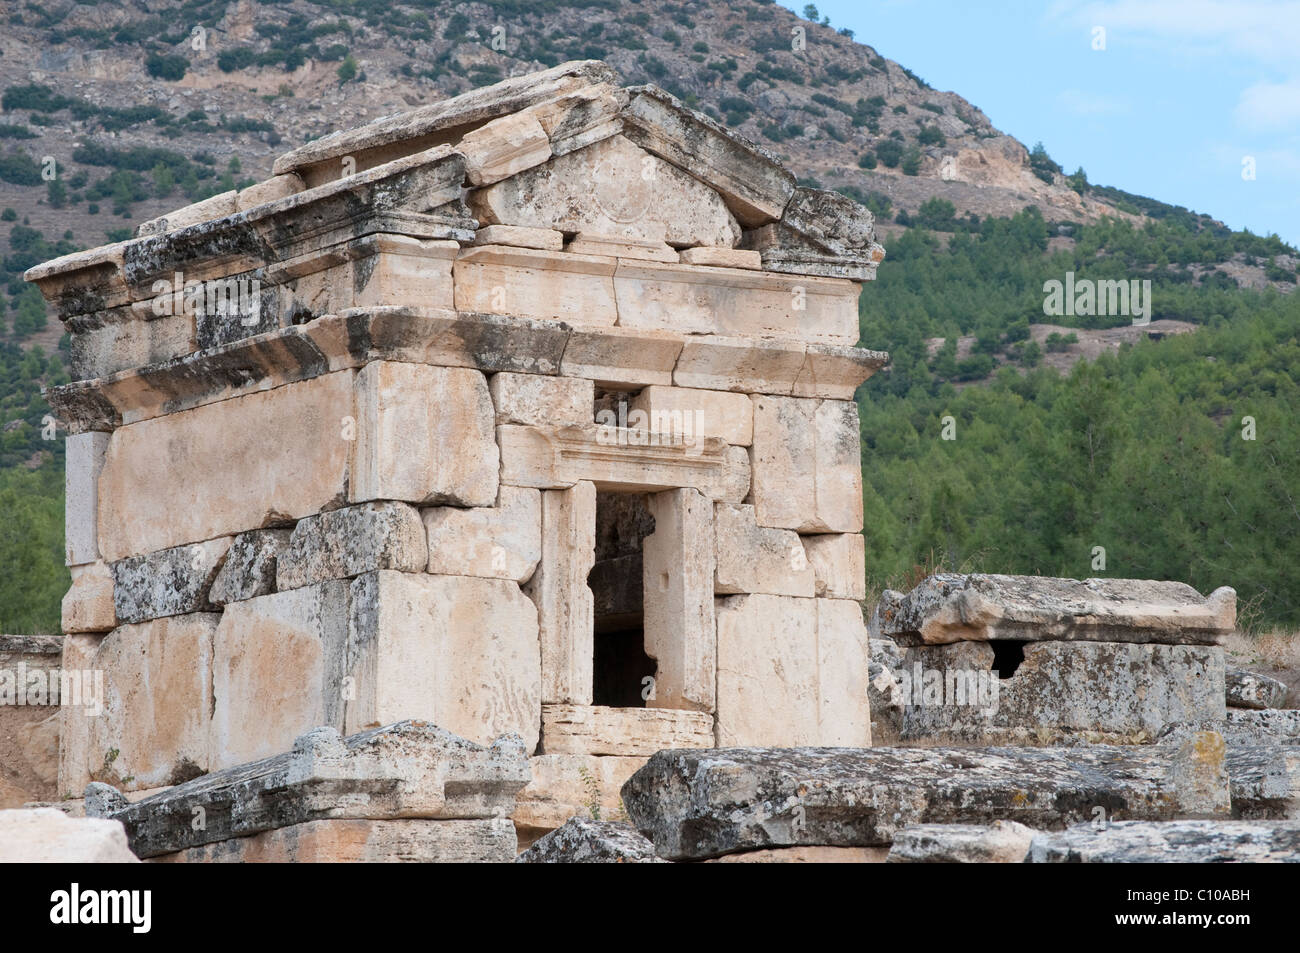 House-type tomb at the ruins of the Necropolis in Hierapolis, Turkey - Stock Image